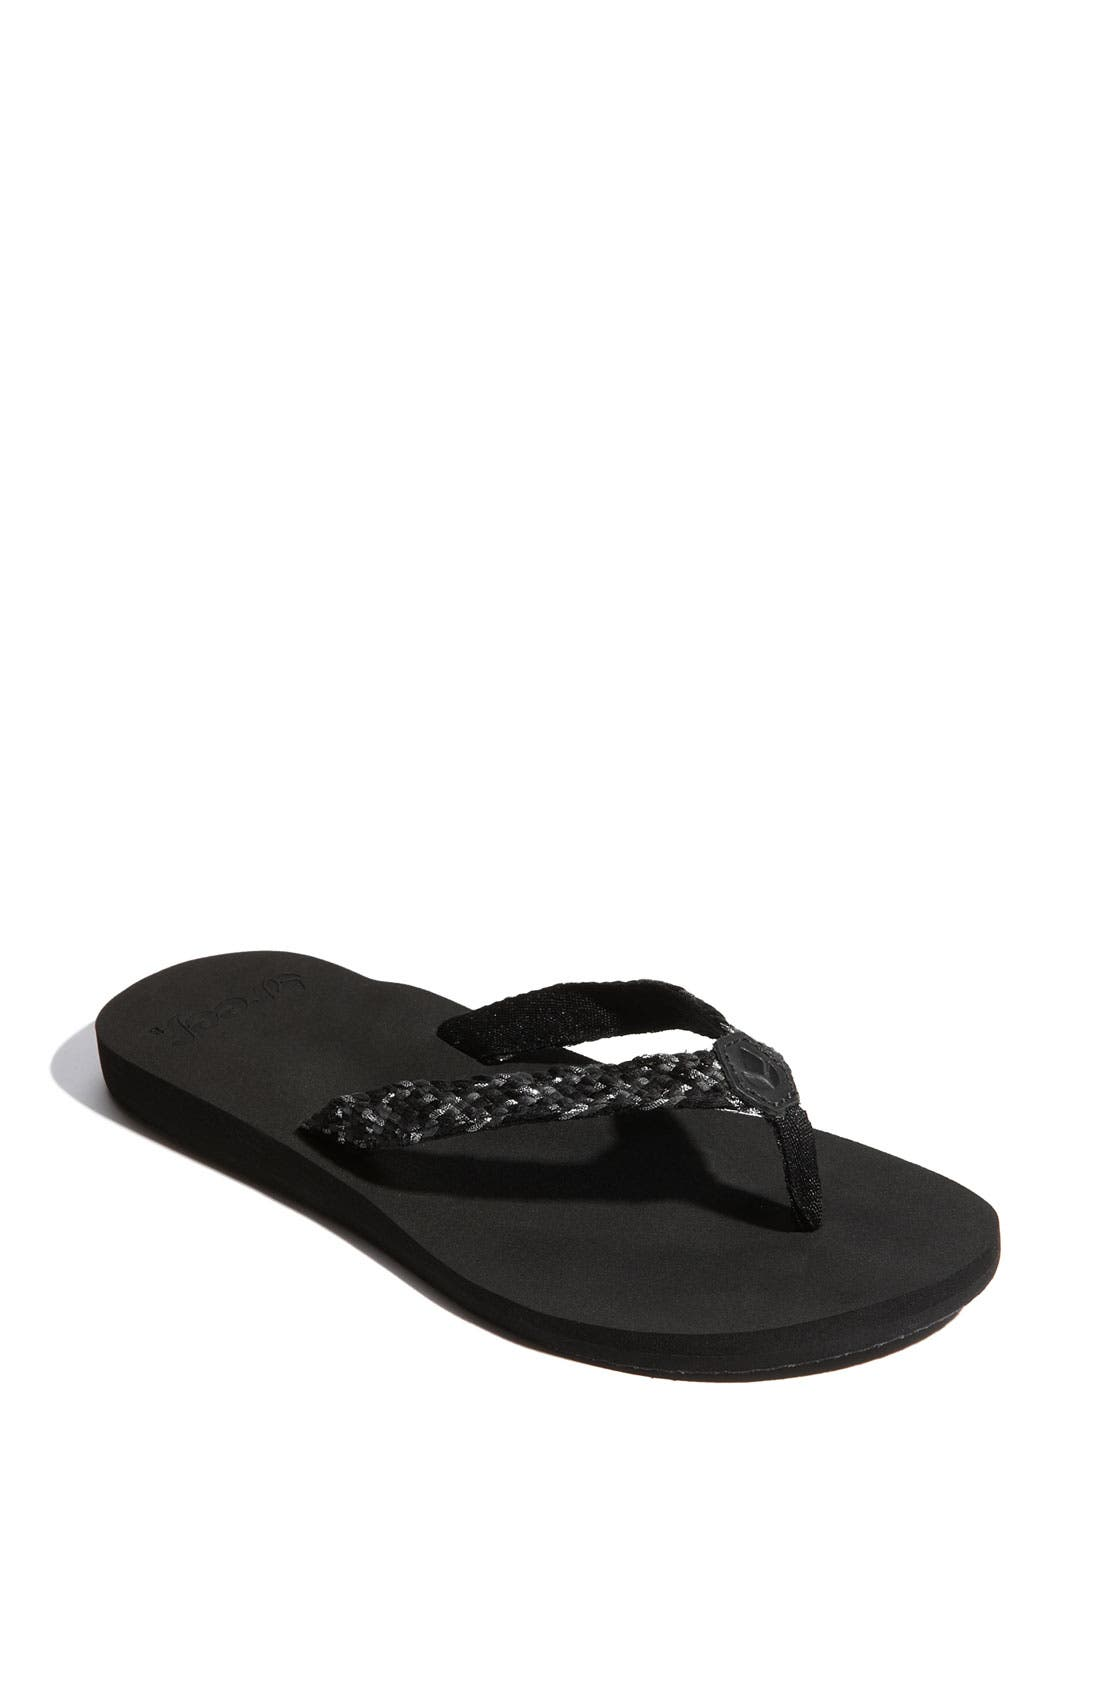 Main Image - Reef 'Mallory' Flip Flop